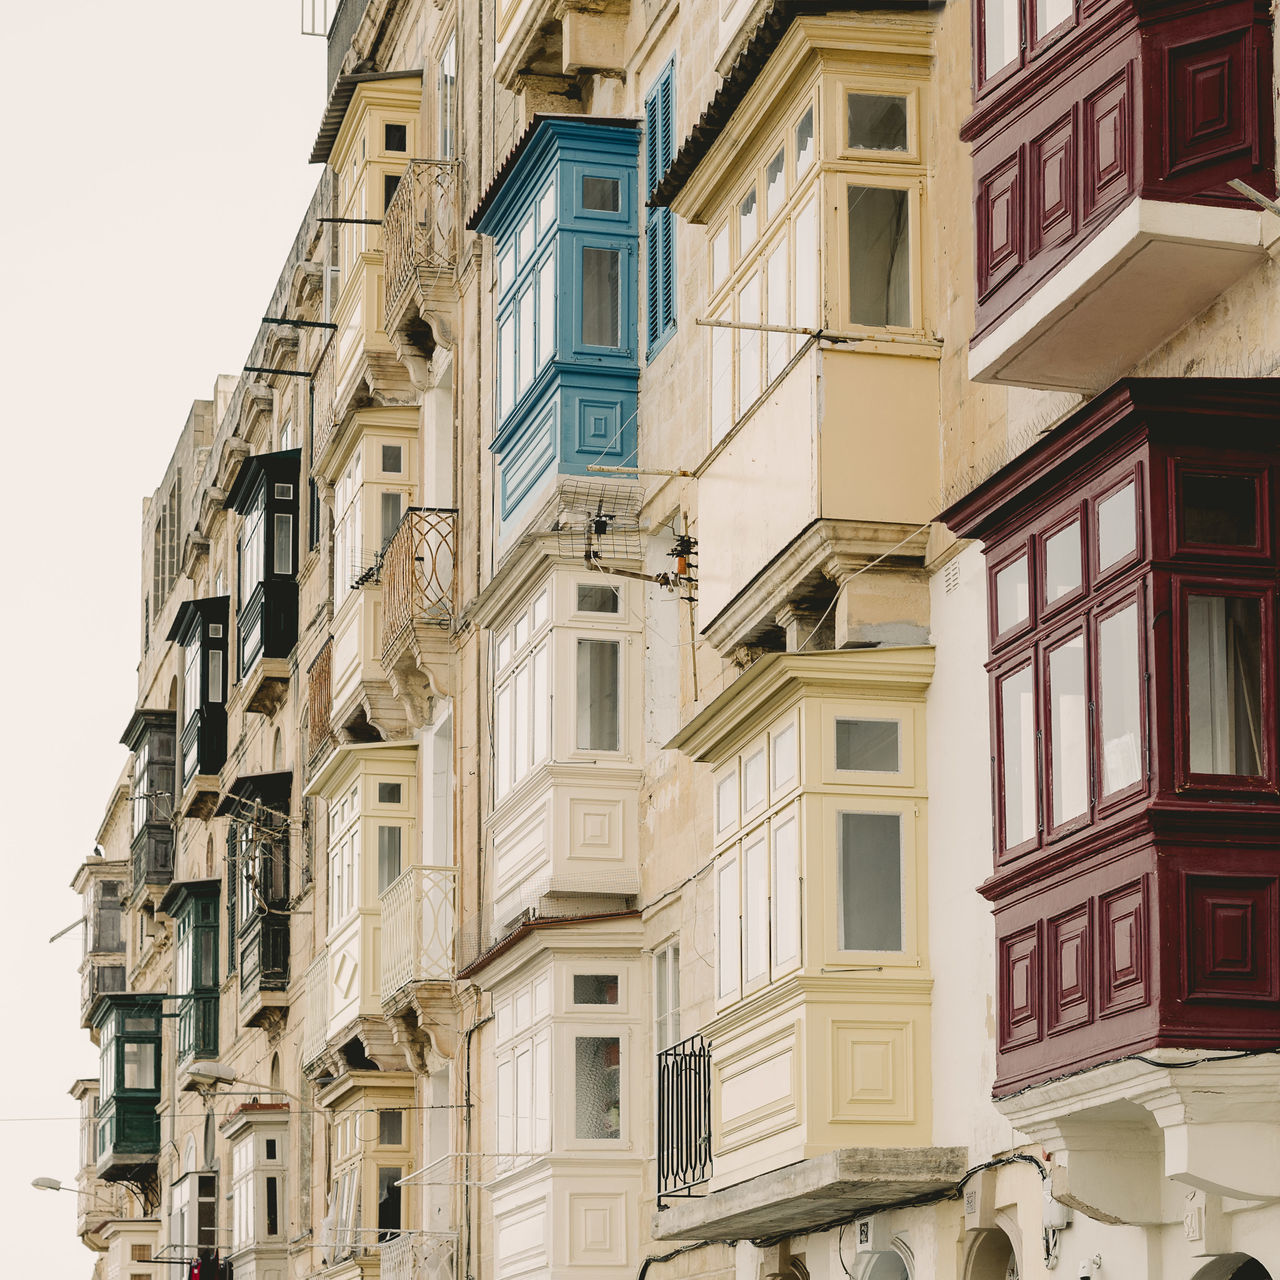 Balconies of Valletta Architecture Balconies Balcony Building Exterior Malta Residential Building Townhouse Valletta Window